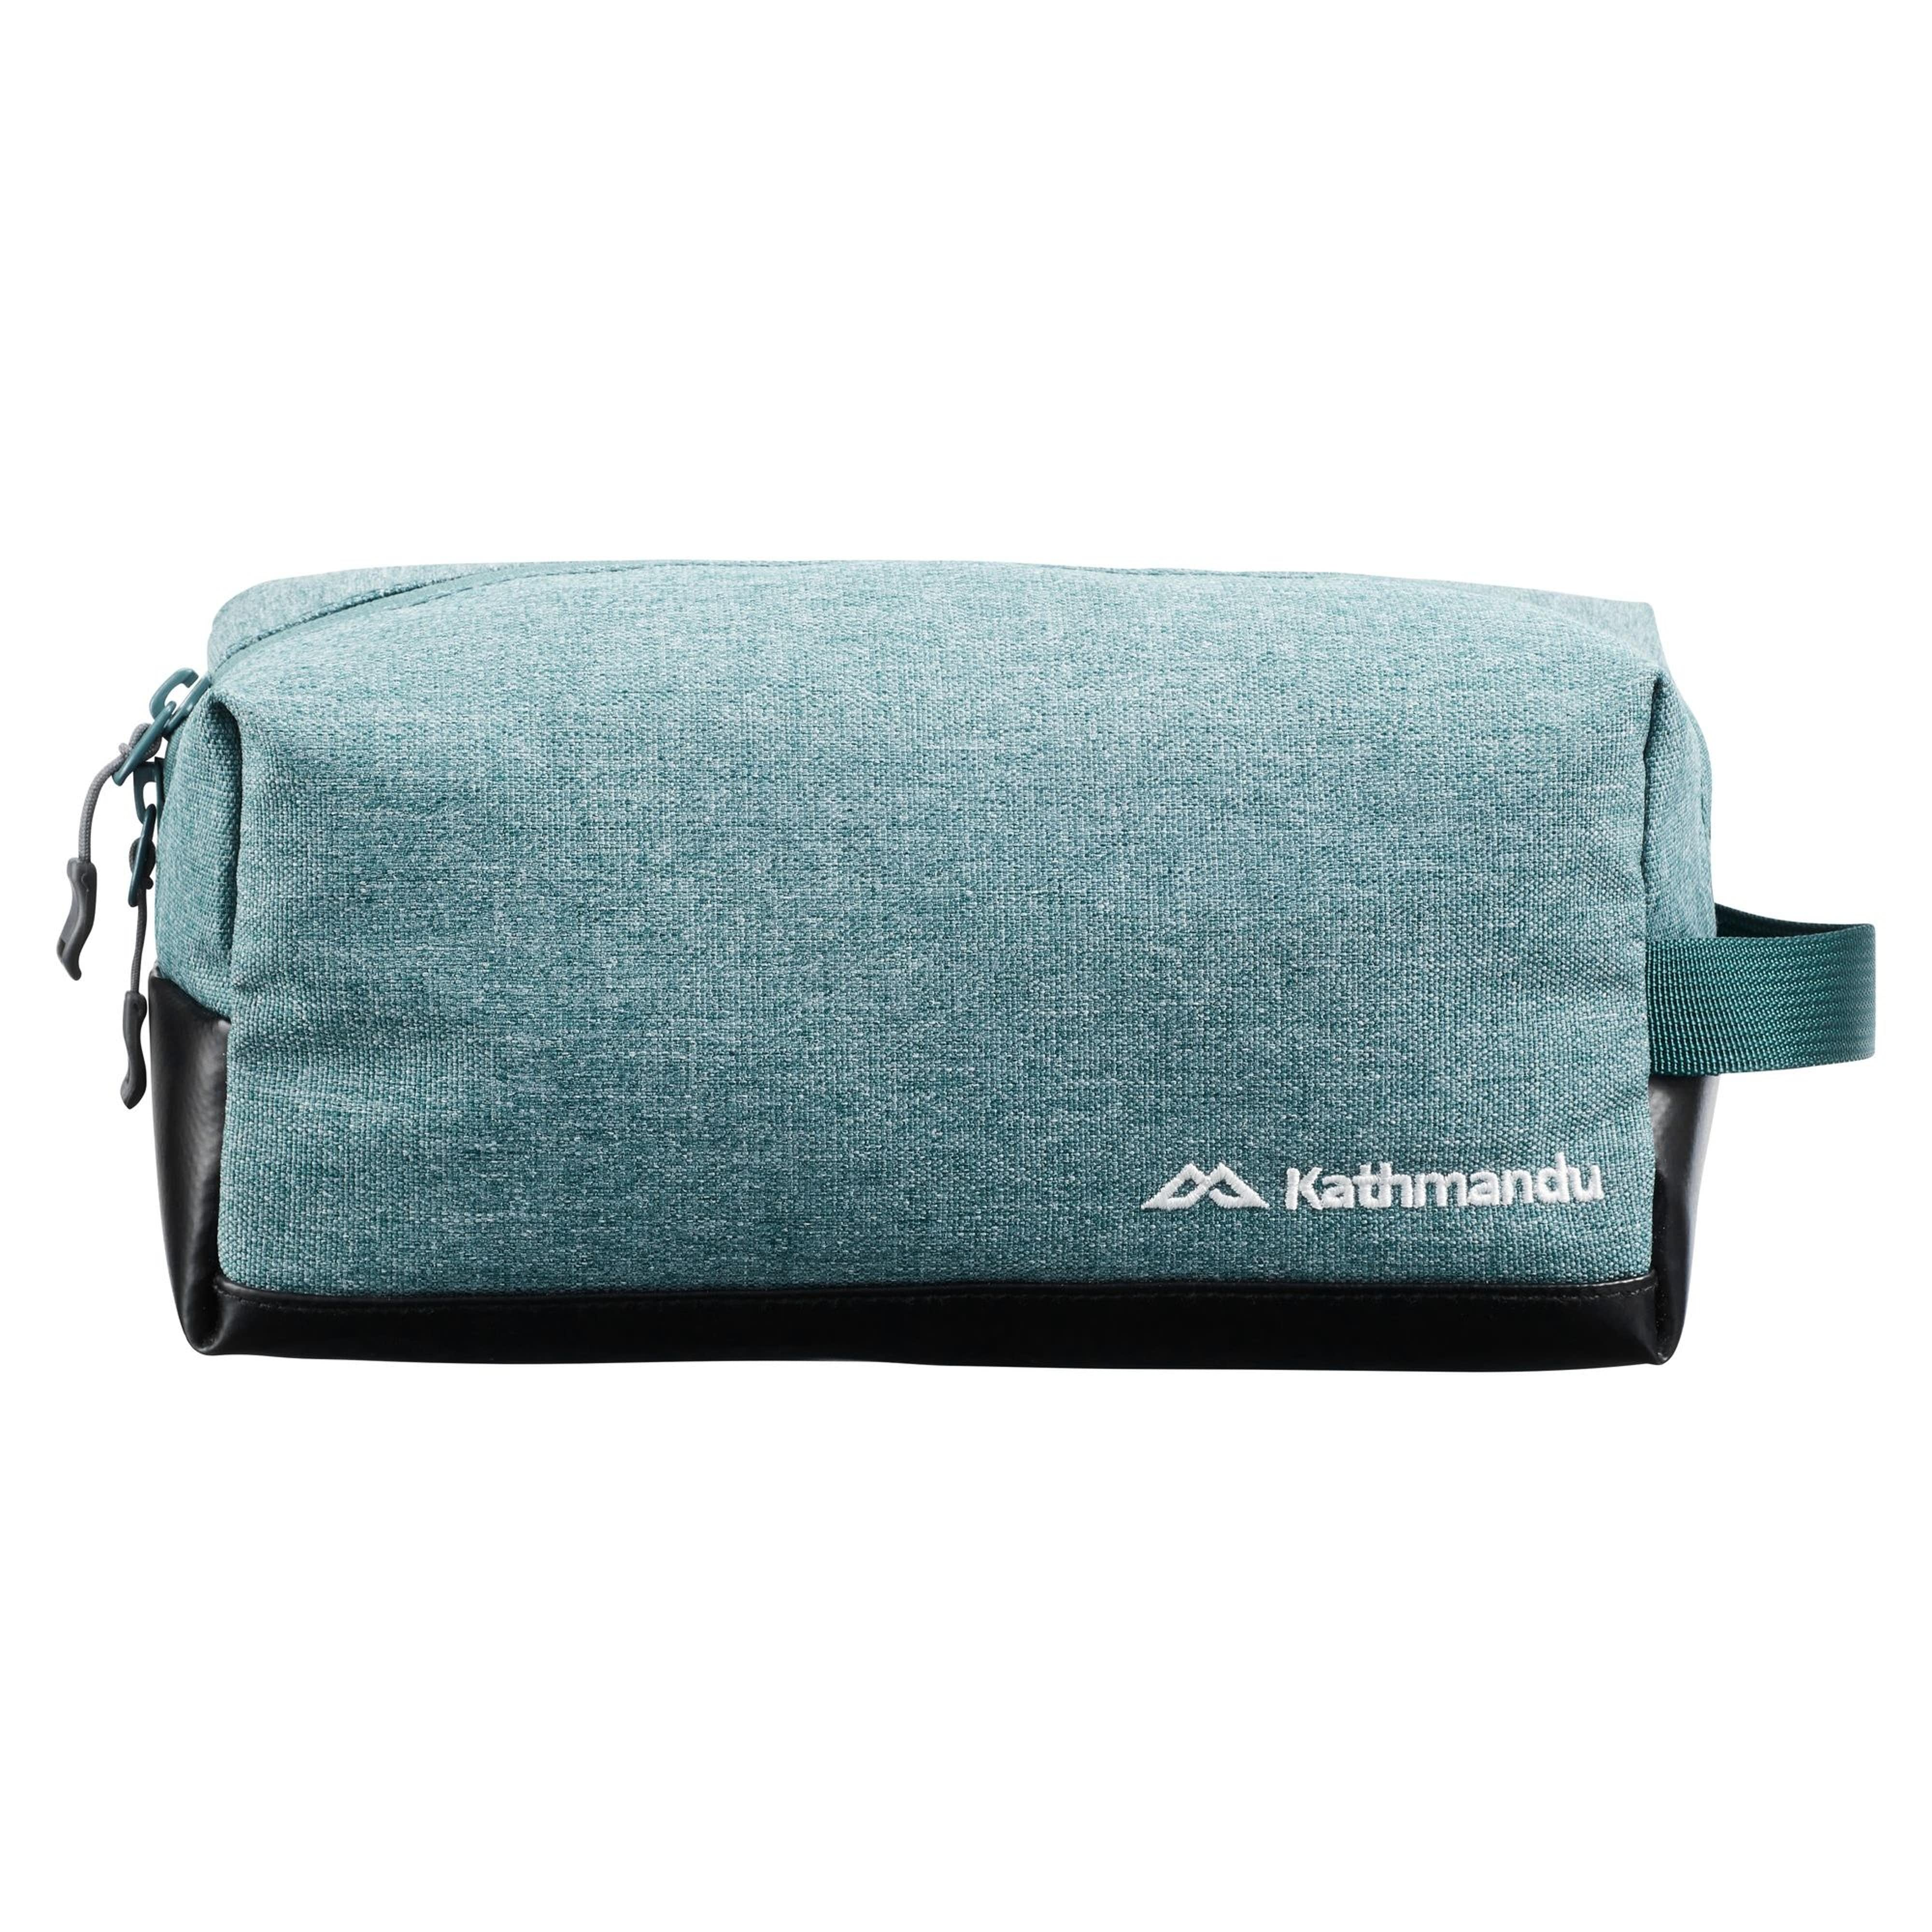 ad20ce6b68 Toiletry Bags